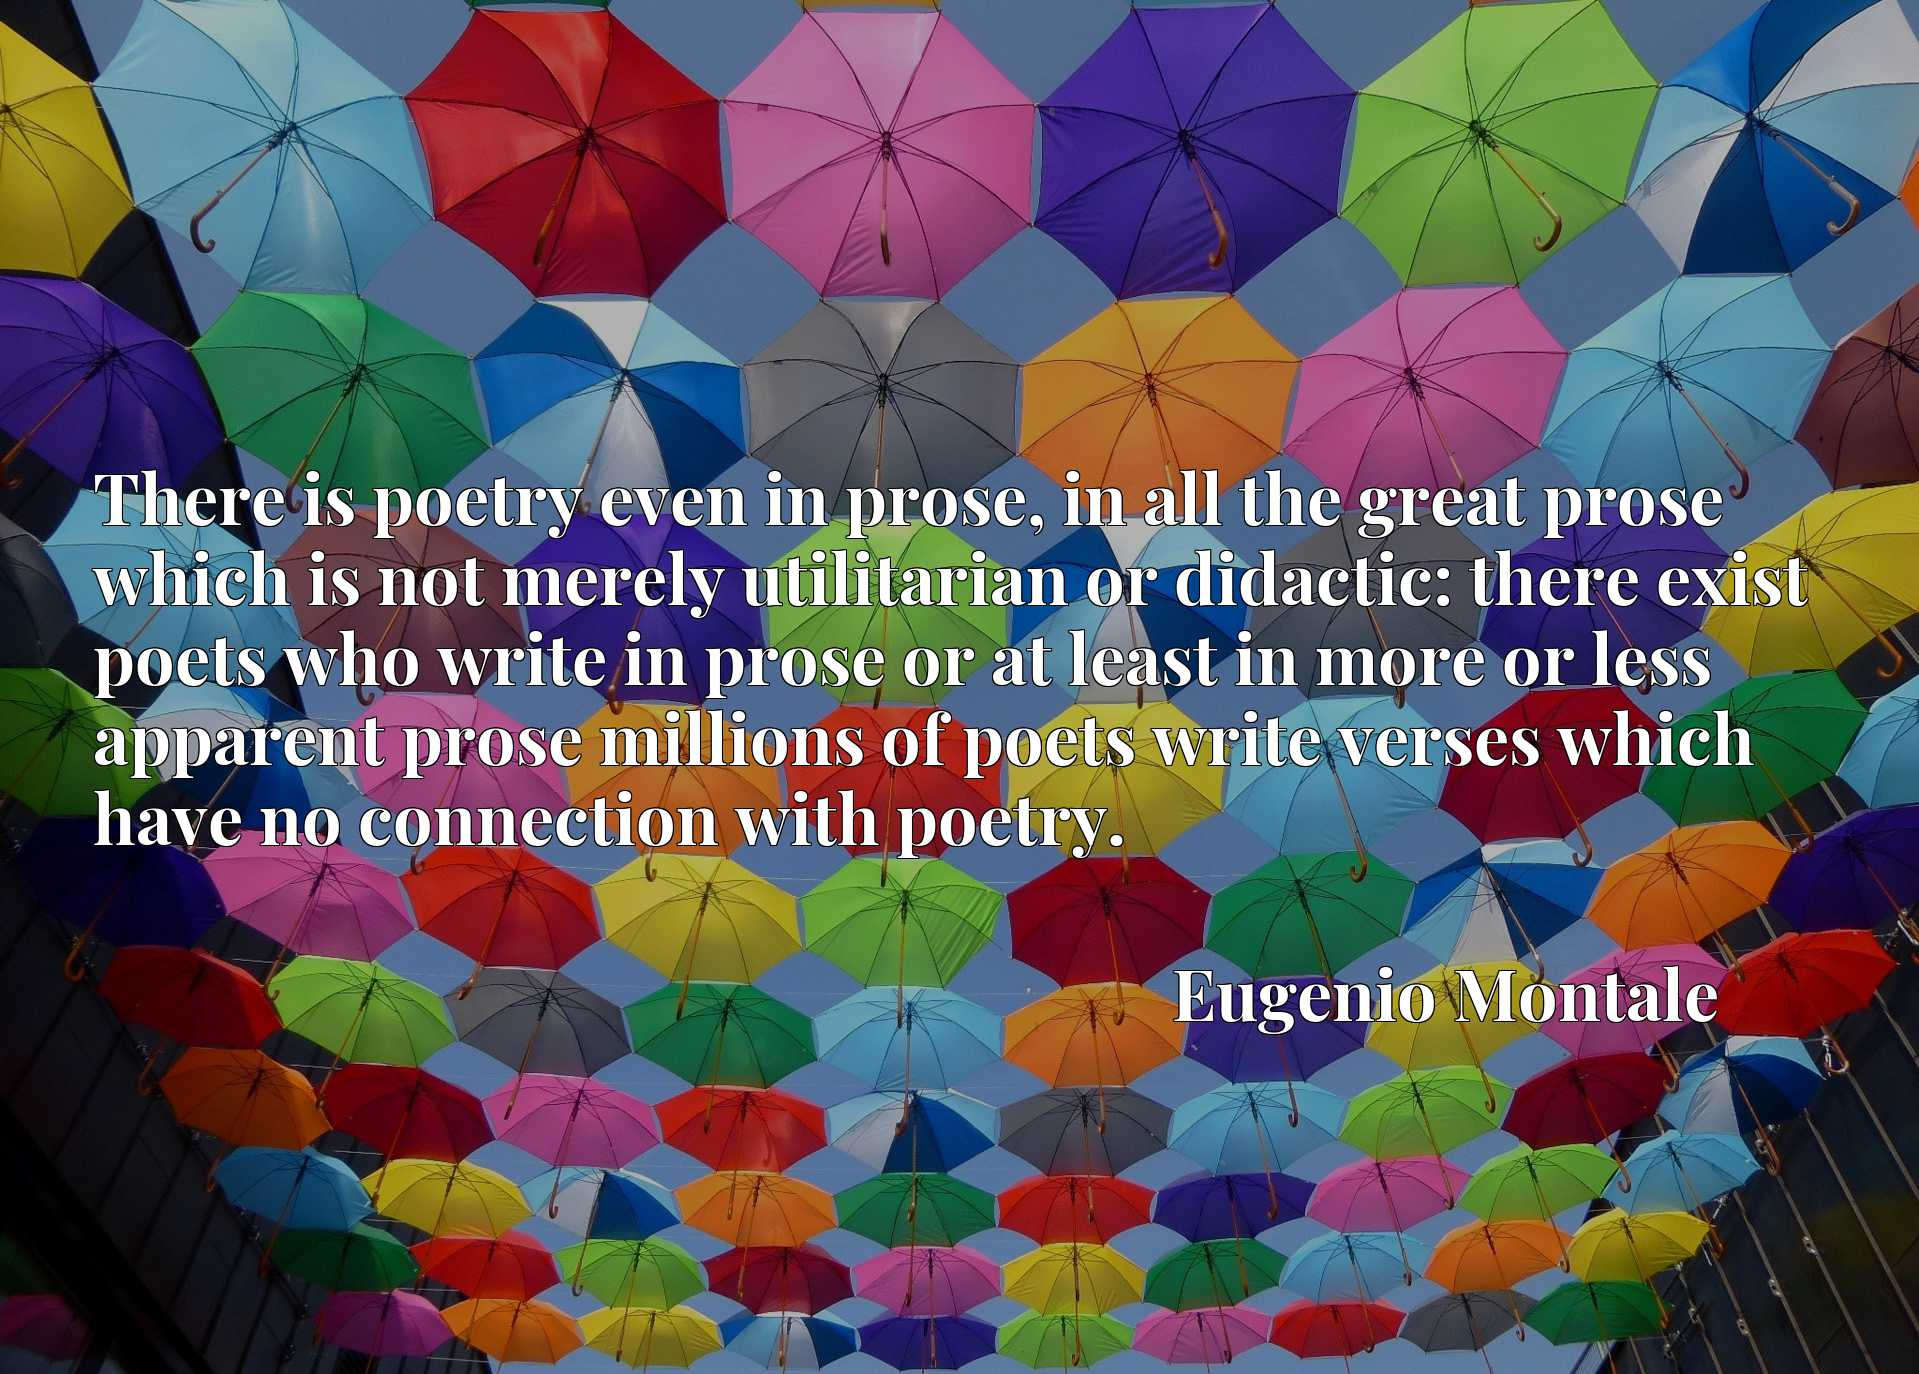 There is poetry even in prose, in all the great prose which is not merely utilitarian or didactic: there exist poets who write in prose or at least in more or less apparent prose millions of poets write verses which have no connection with poetry.